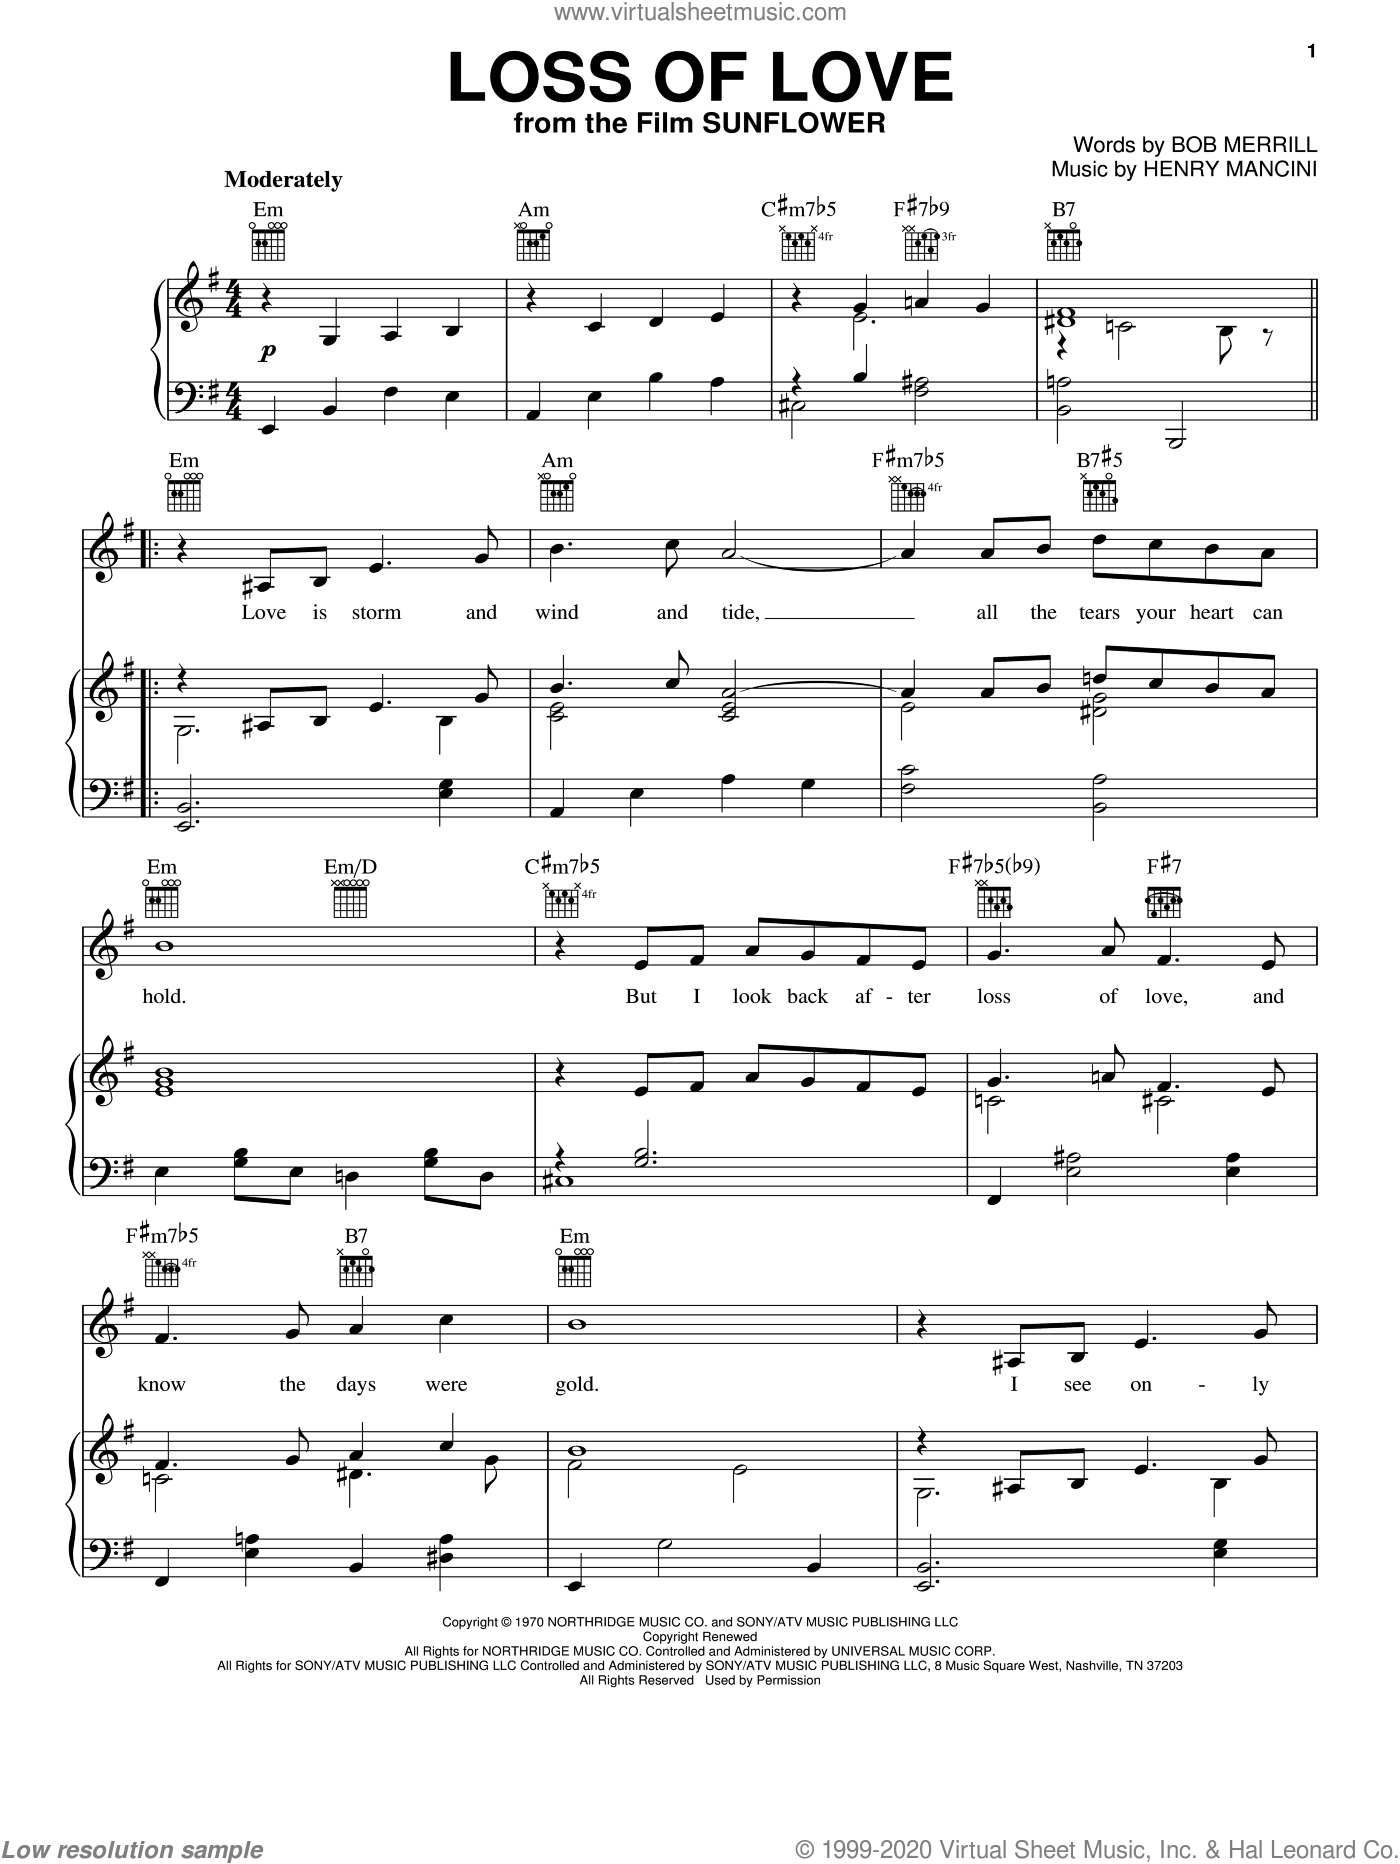 Loss Of Love sheet music for voice, piano or guitar by Henry Mancini and Bob Merrill, intermediate skill level